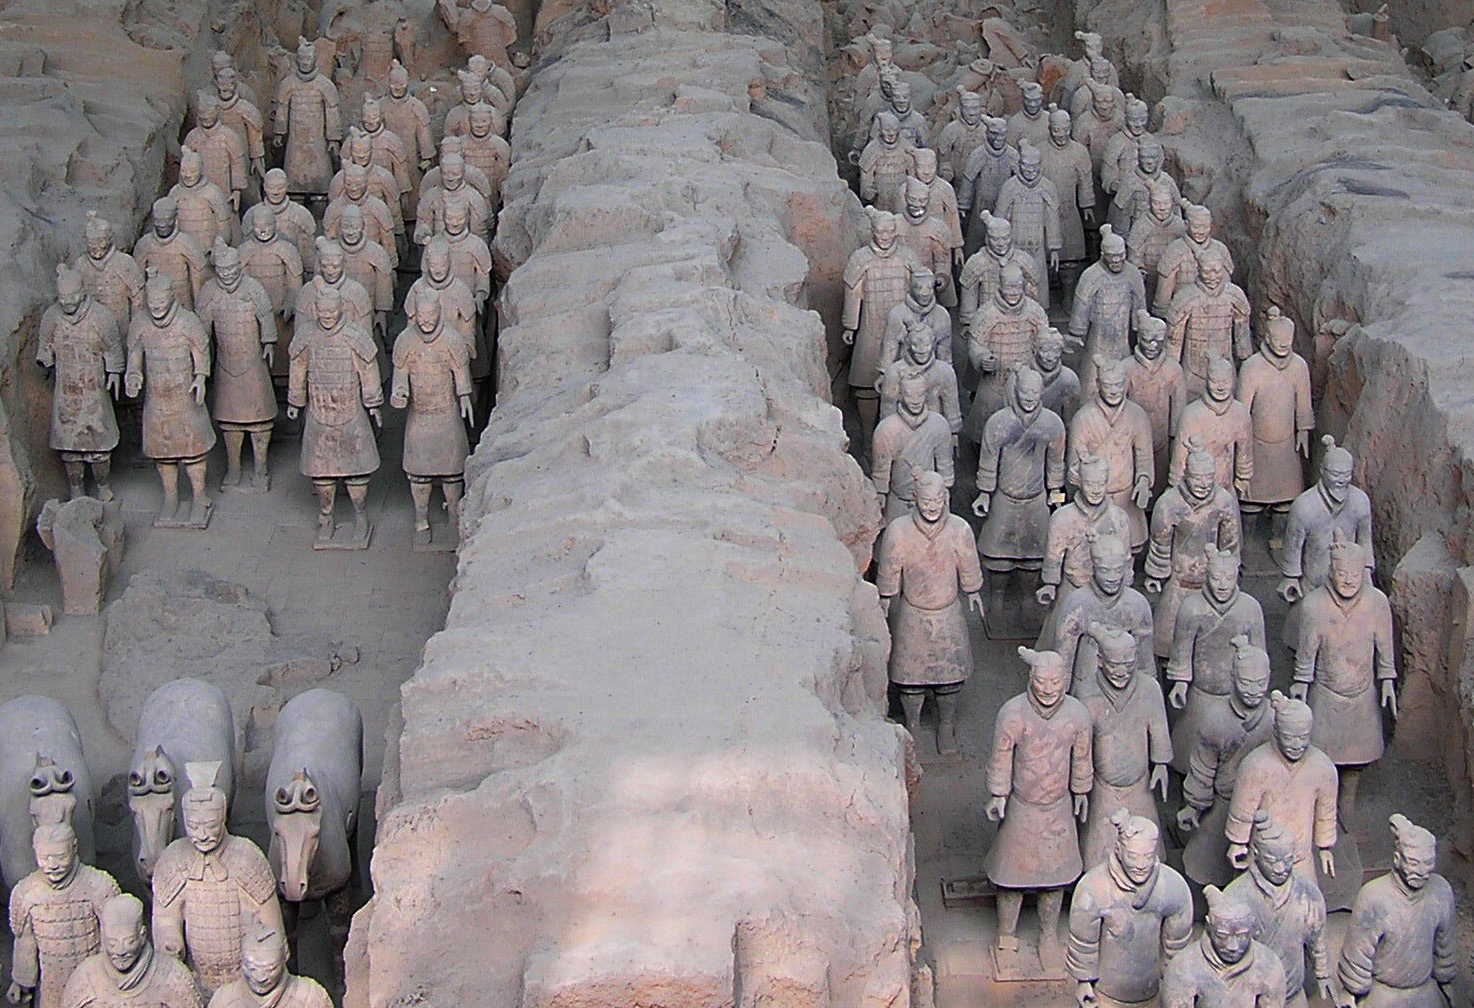 Pit 1 at the Xian Terracotta Warriors Wiki Commons